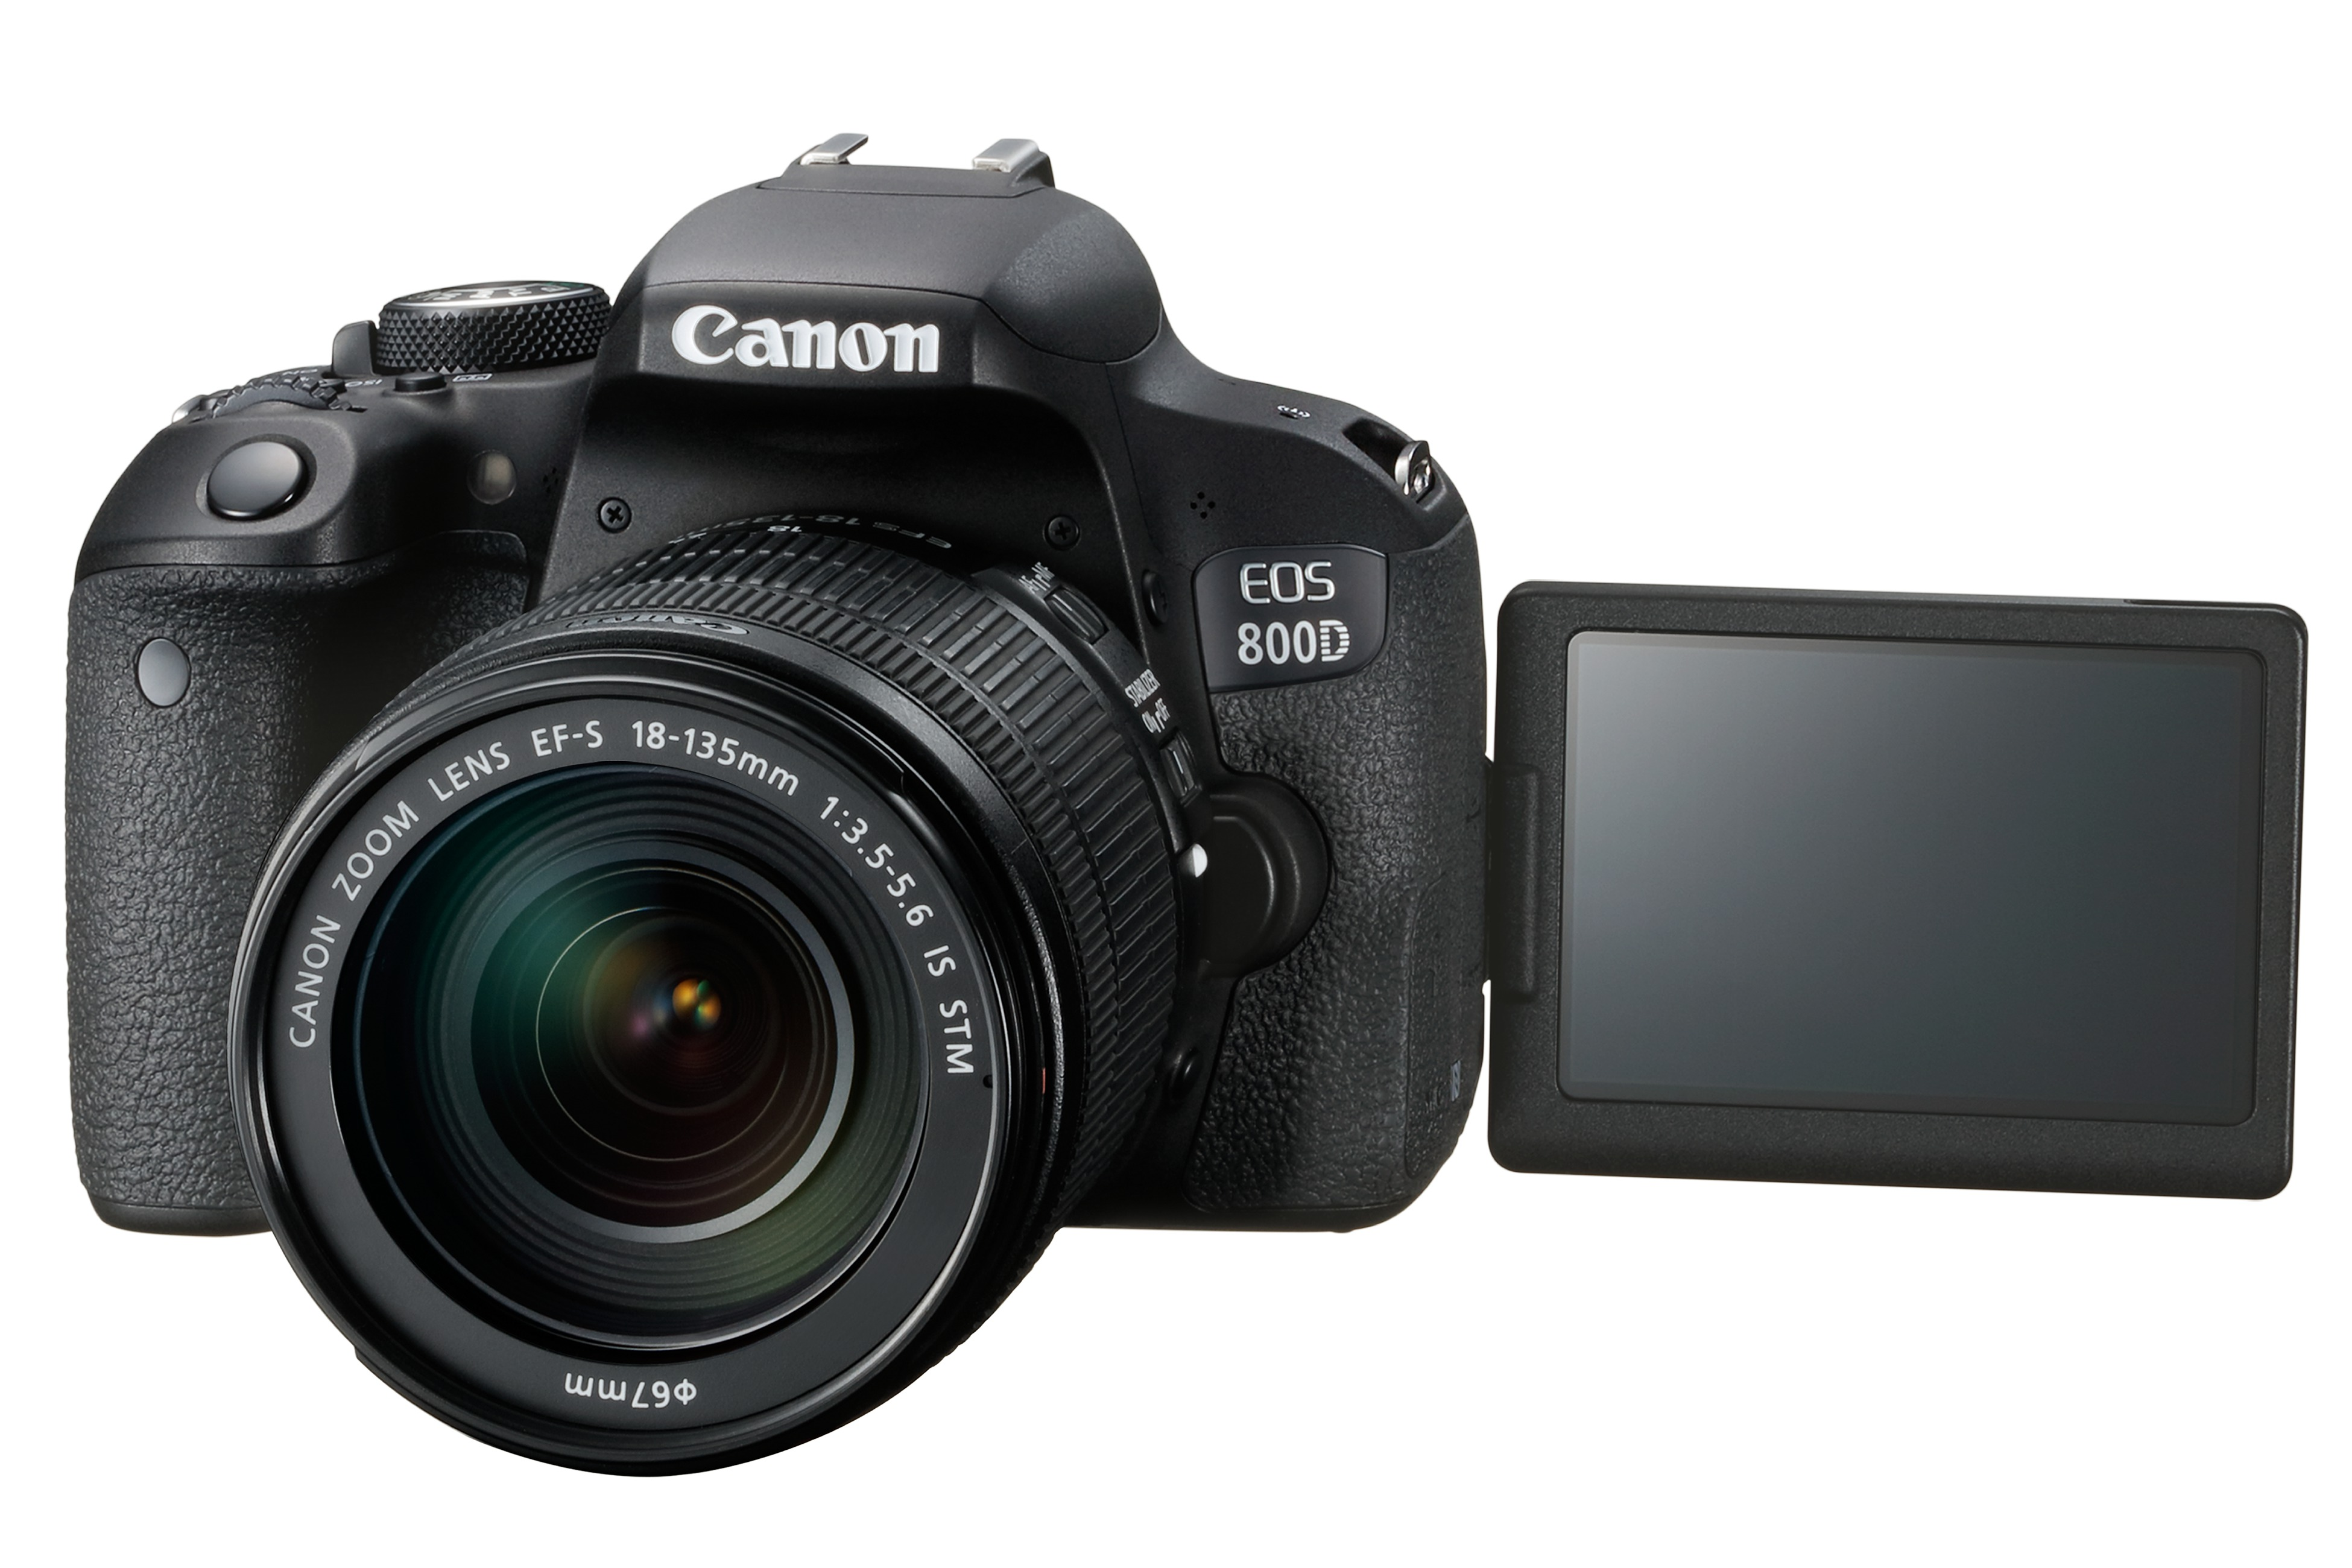 EOS 800D FSL with EF-S 18-135mm IS STM LCD Out